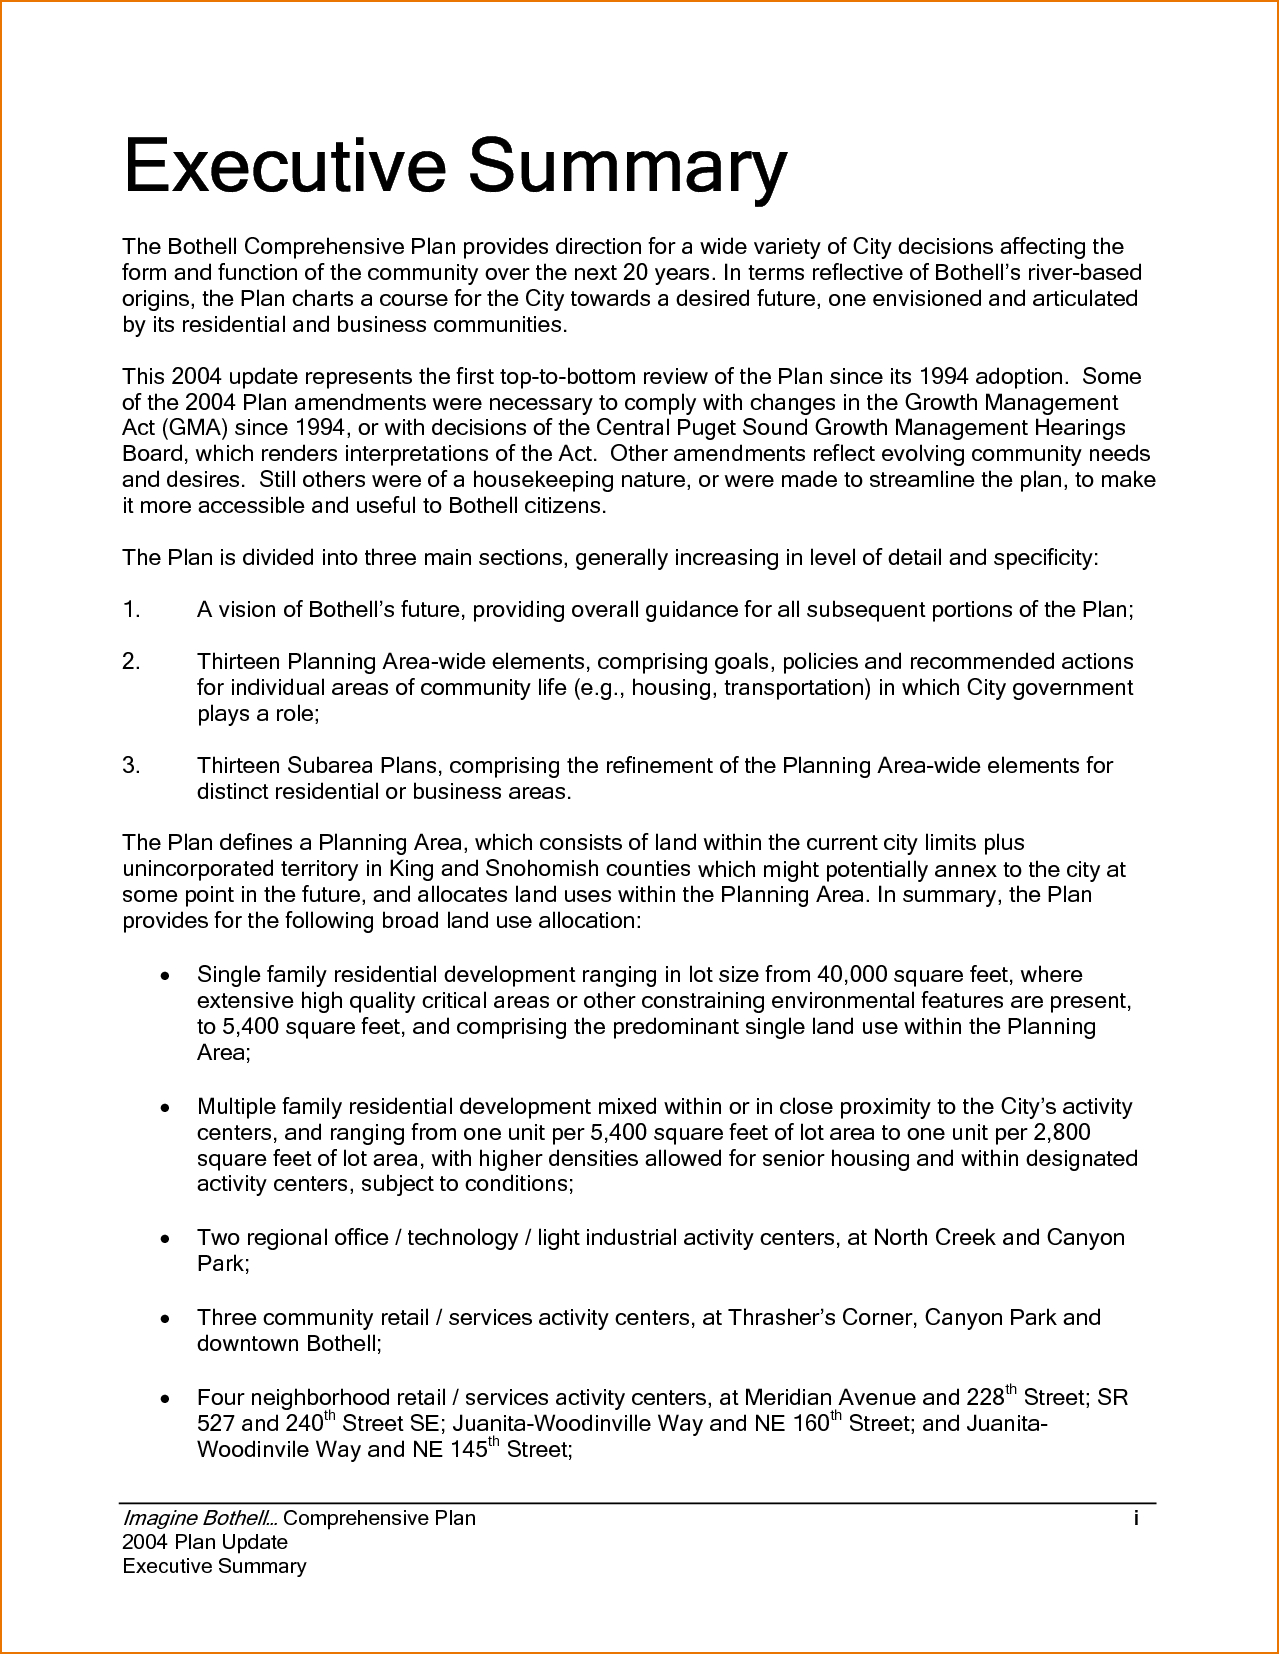 Executive Summary Example Incident Report Template Sample Regarding Incident Summary Report Template